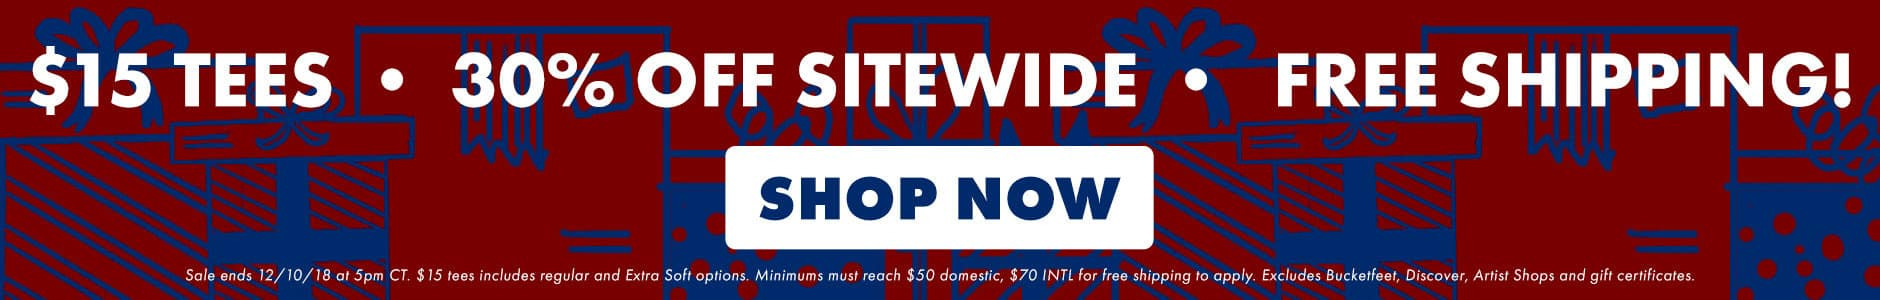 Shop $15 Tees + 30% off + free shipping